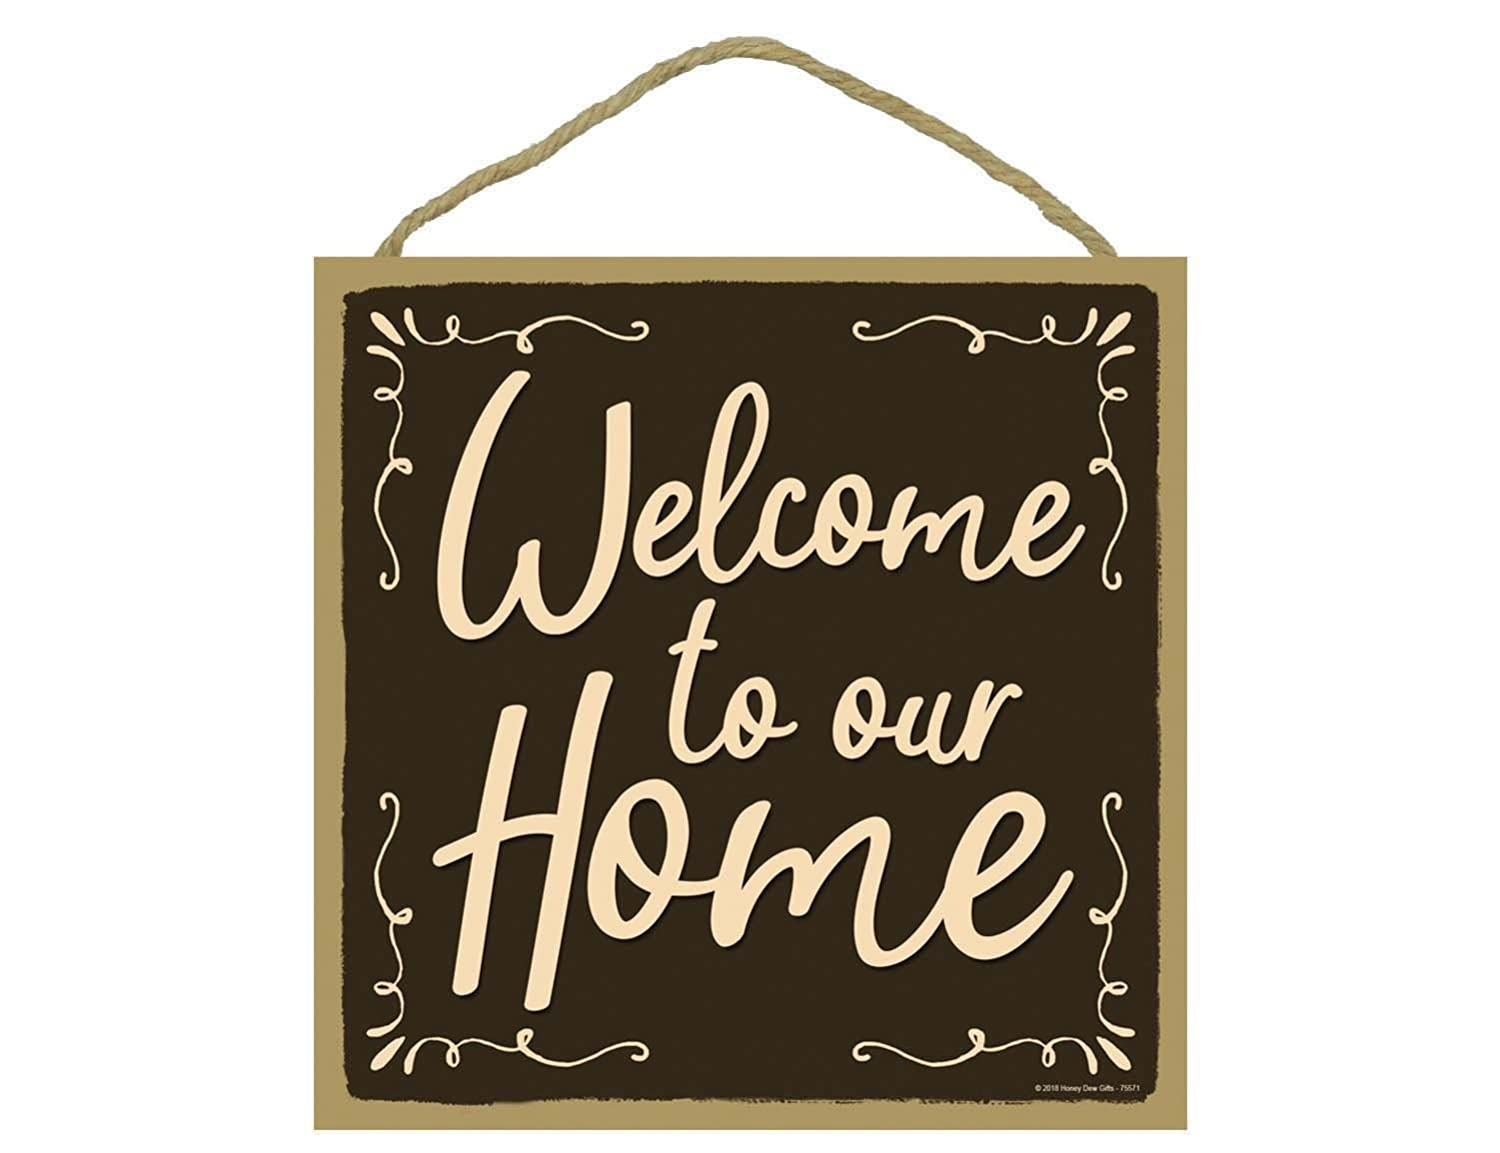 Welcome to Our Home - 10 x 10 inch Hanging Welcome Sign, Wall Art, Decorative Wood Sign, Home Decor